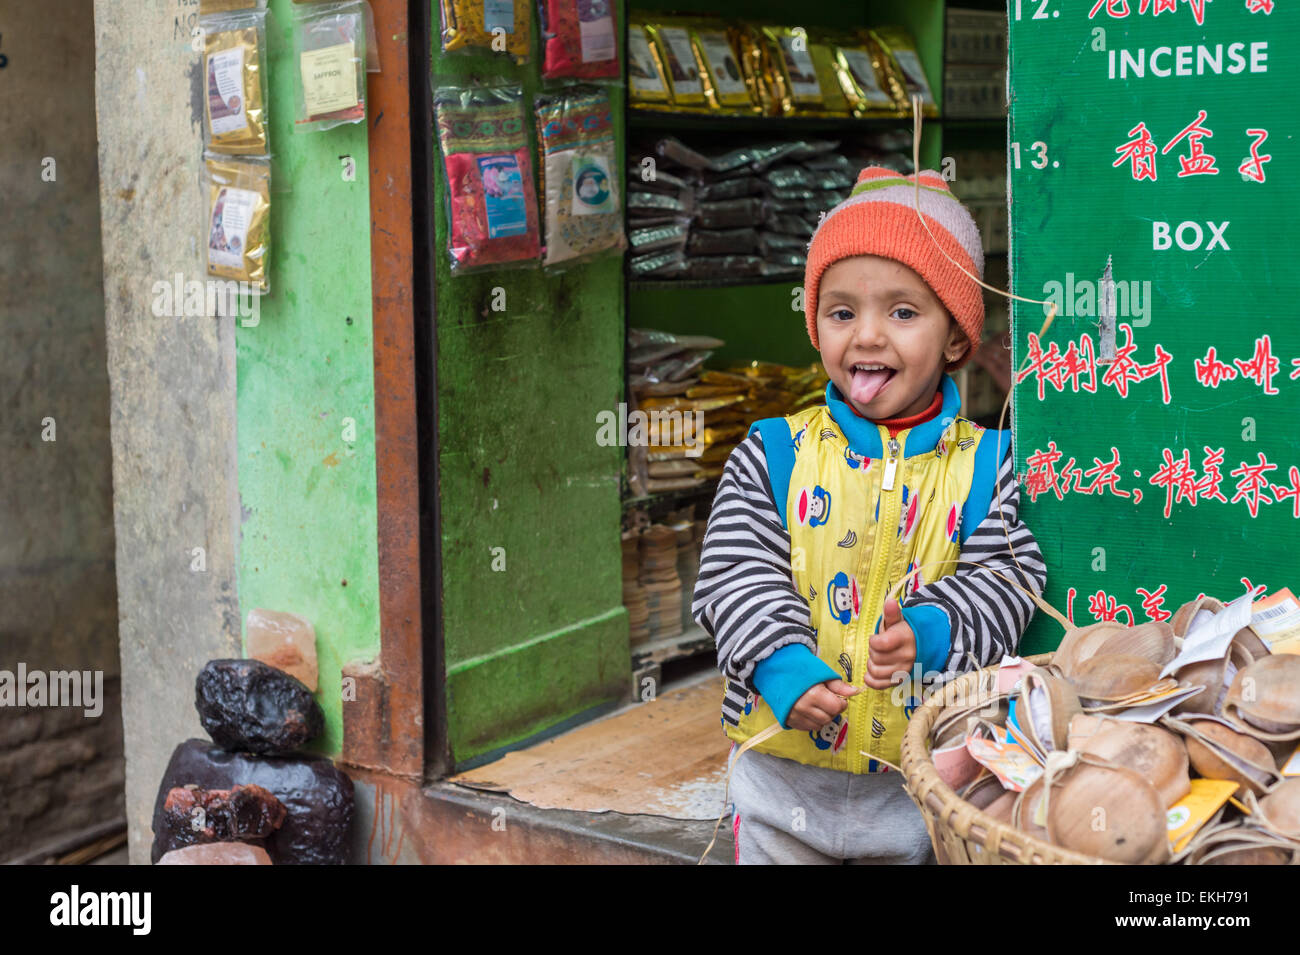 Nepali boy in front of an incense shop in Kathmandu - Stock Image